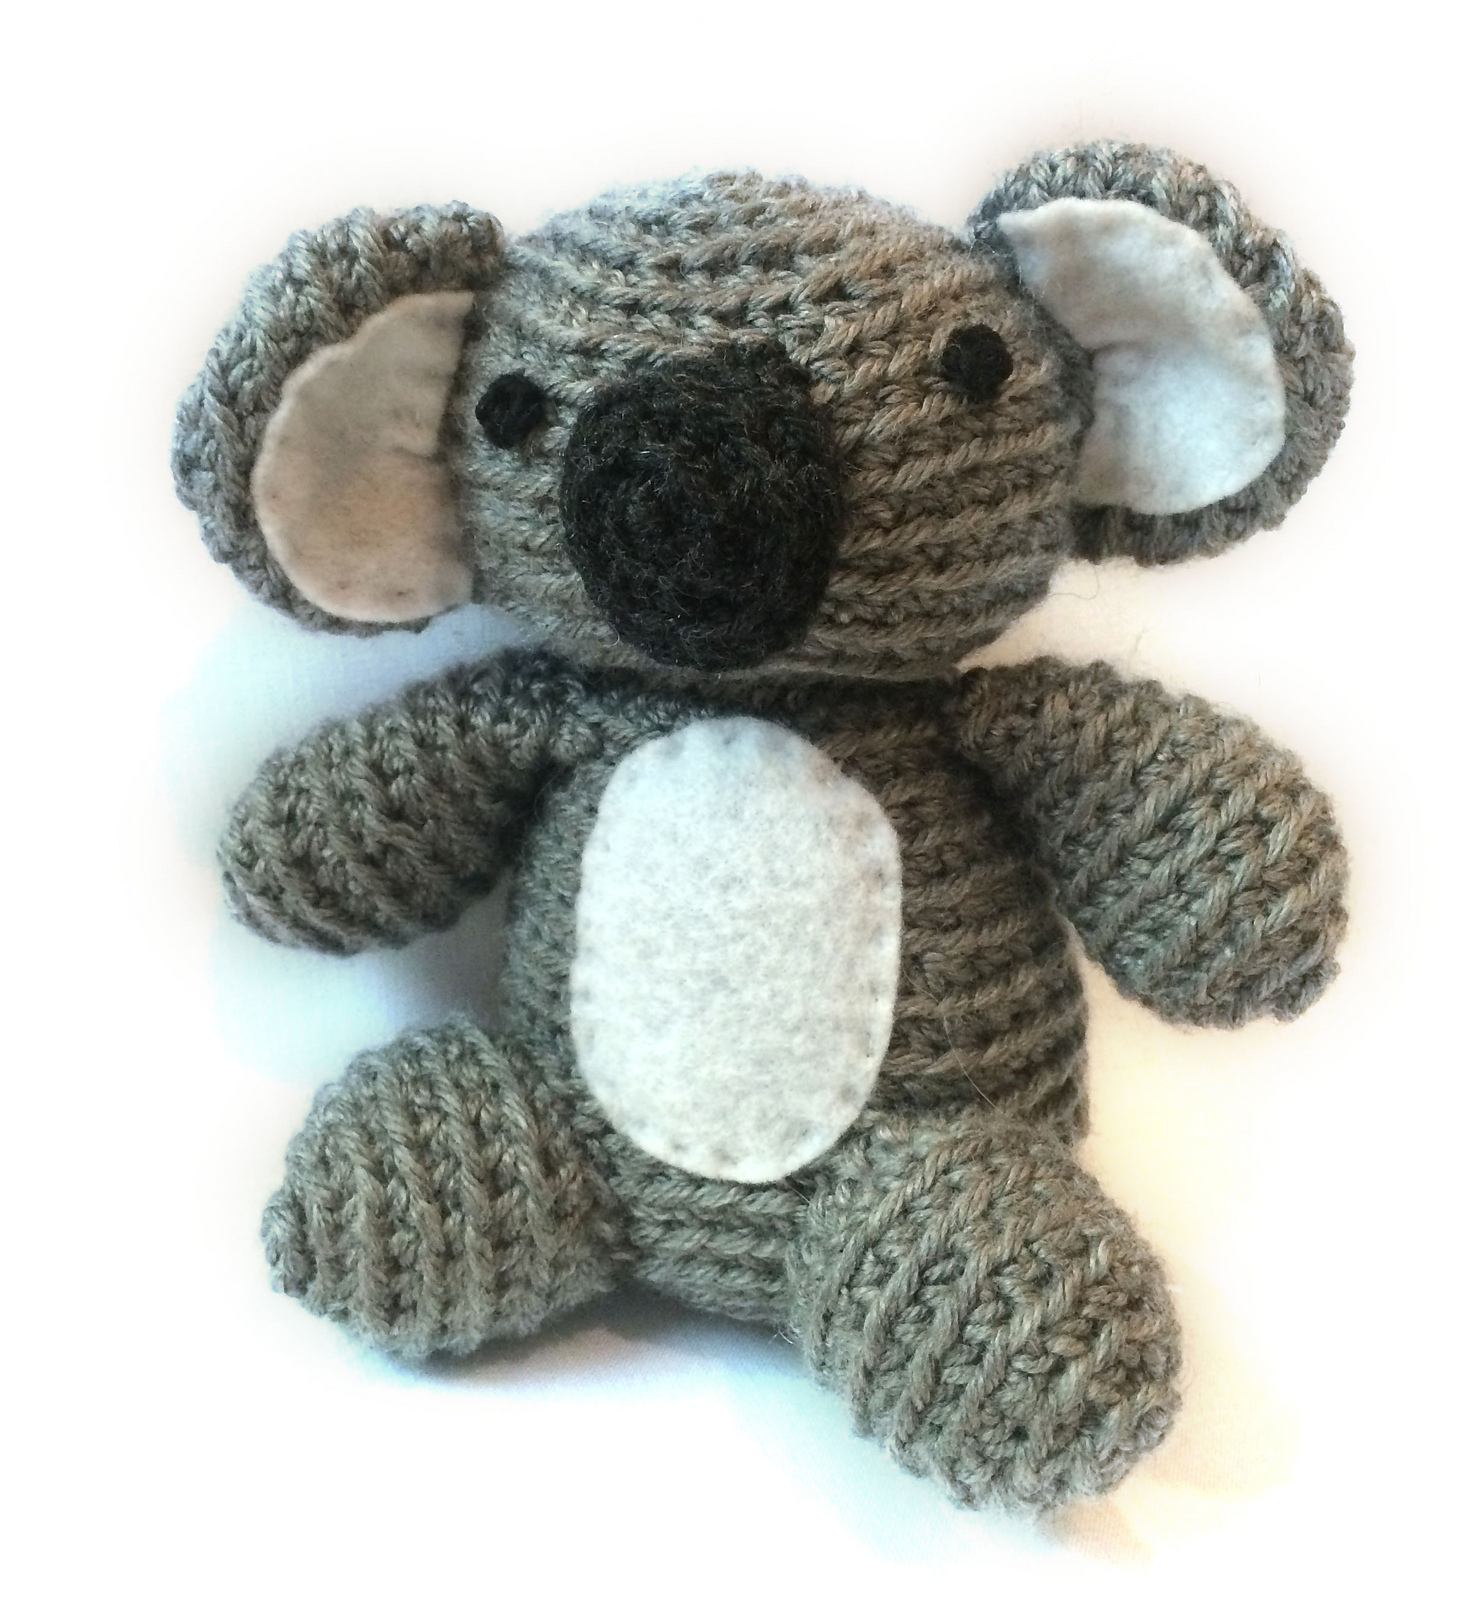 Crochet Pattern Koala Bear : The Spicy Knitter: FO: Sam the Koala II